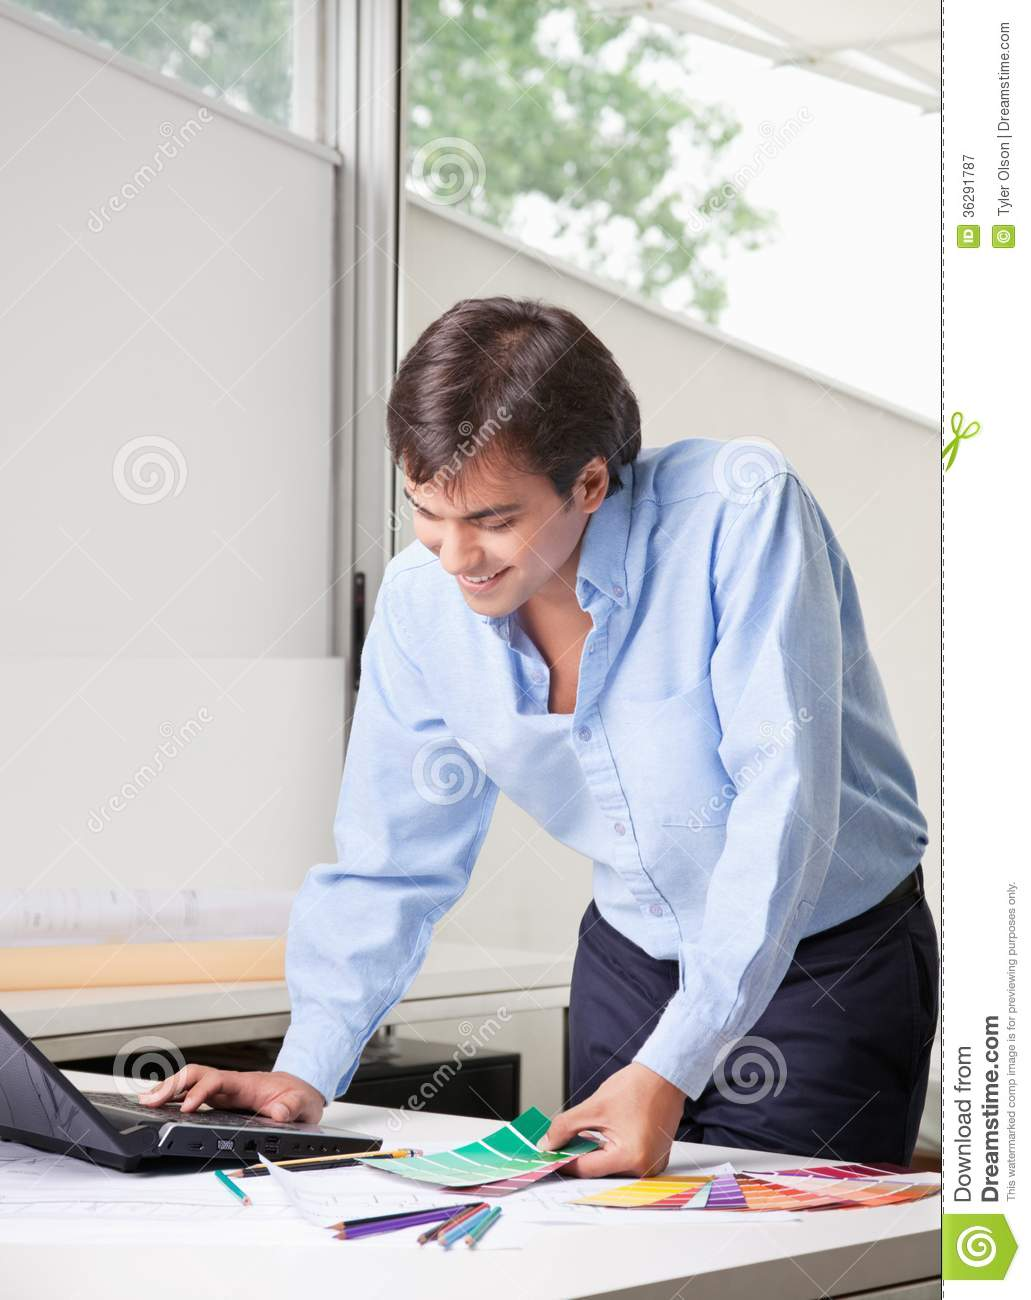 Male Interior Designers At Work male interior designer using laptop royalty free stock photography